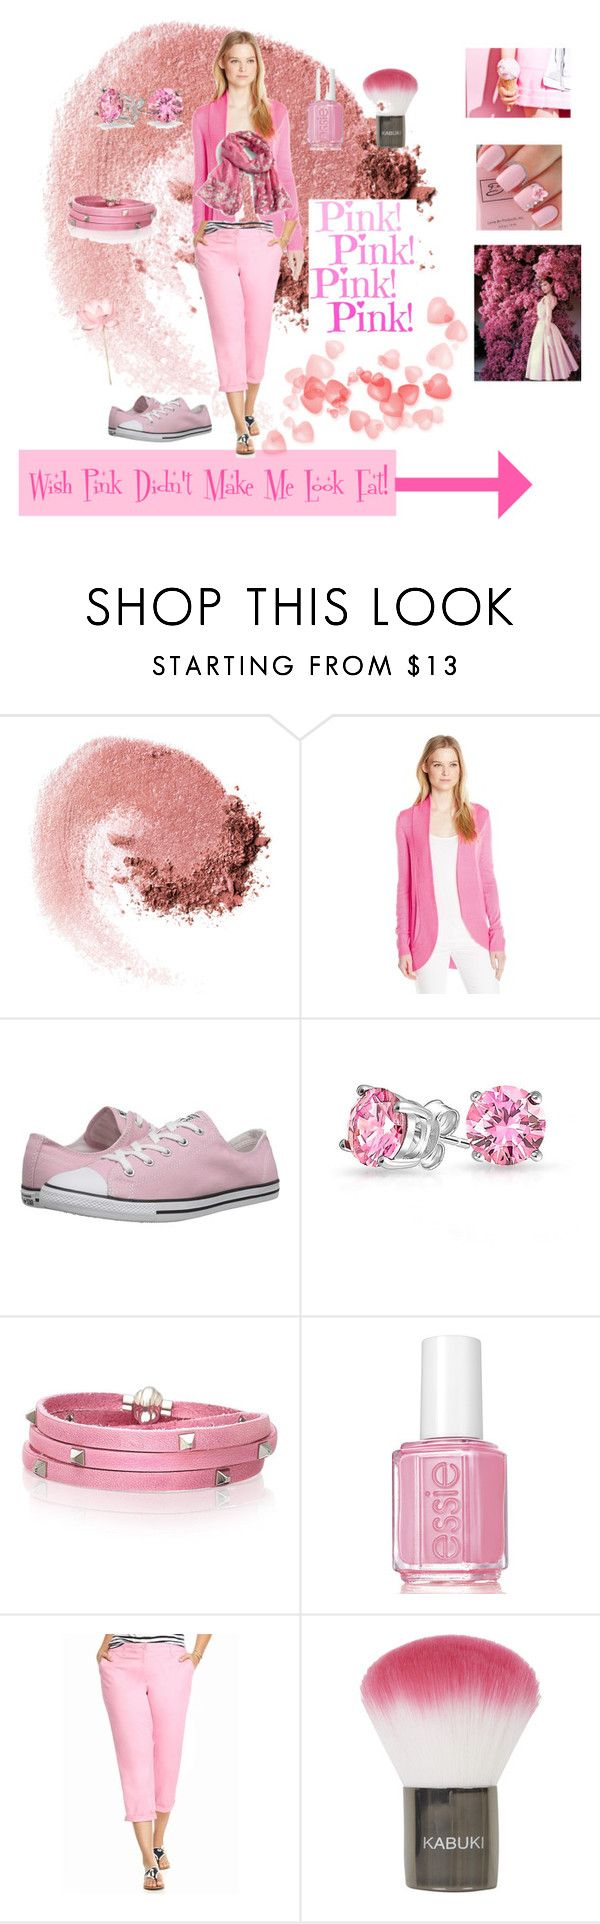 """""""Wish pink didn't make me look fat!"""" by vickerlini ❤ liked on Polyvore featuring NARS Cosmetics, Lilly Pulitzer, Converse, Bling Jewelry, Sif Jakobs Jewellery, Essie, Crown & Ivy, Topshop, Vera Bradley and plus size clothing"""